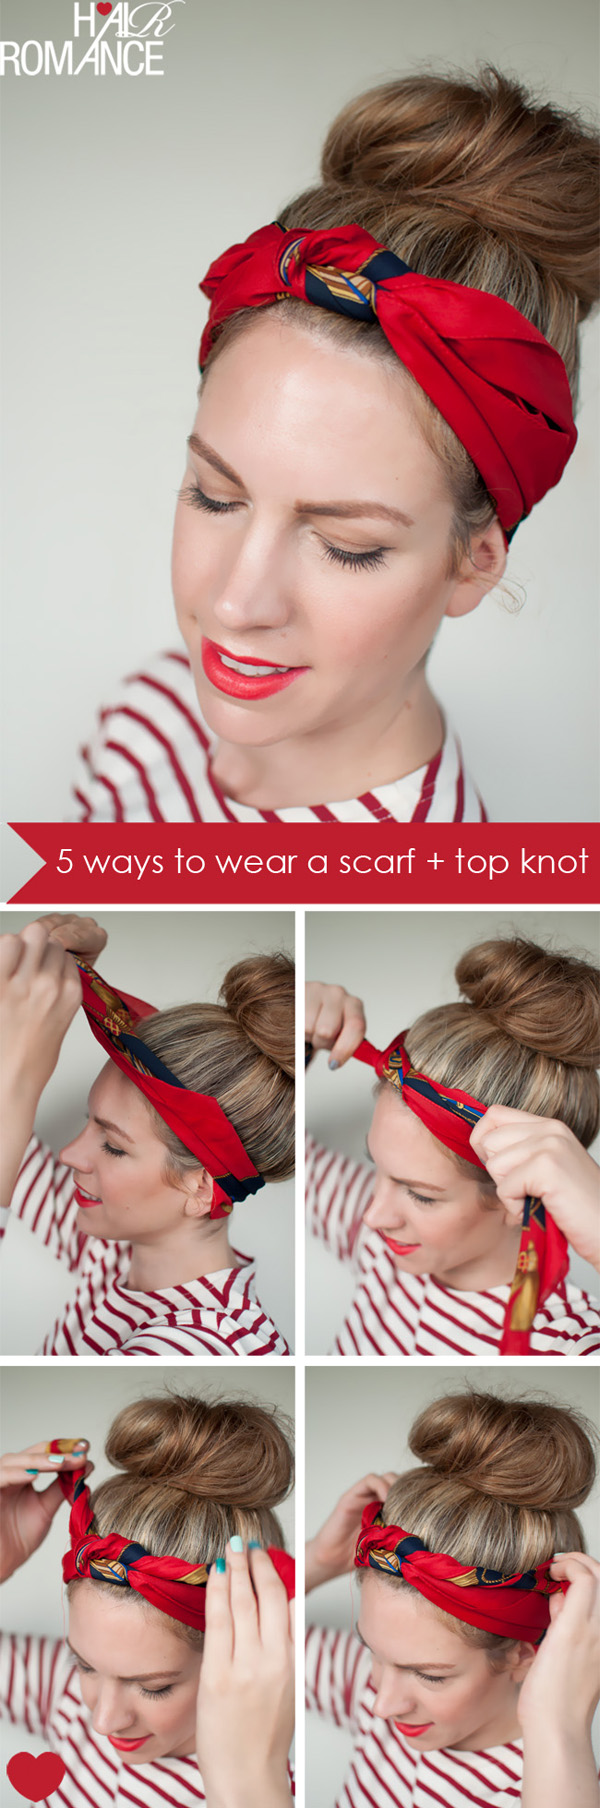 5 Ways To Wear A Scarf And A Top Knot 3 Knot Headband Hair Romance